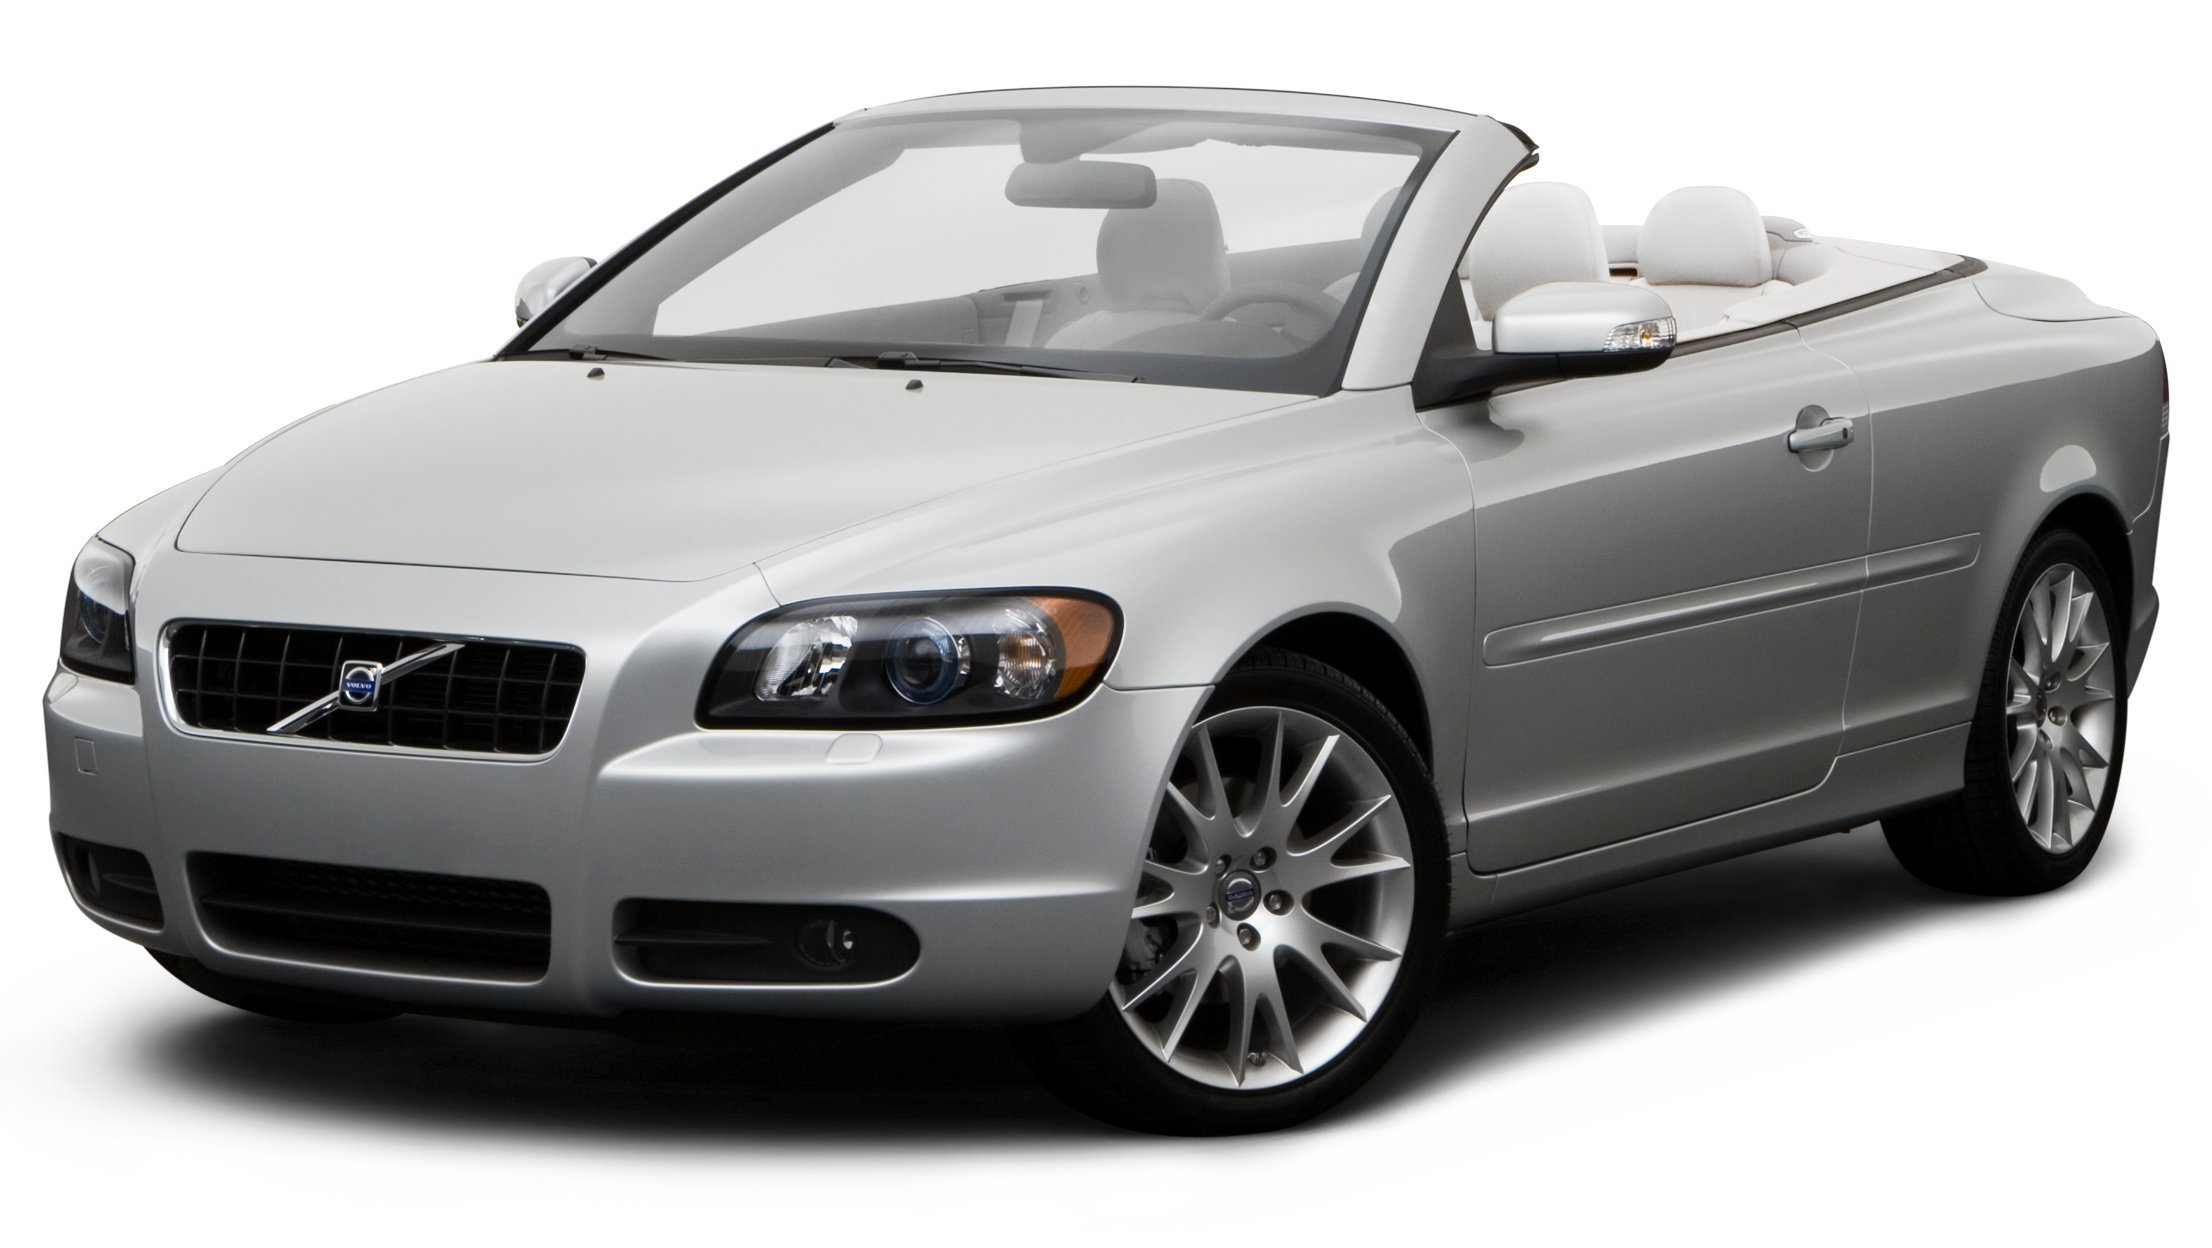 2008 saab 9 3 reviews images and specs vehicles. Black Bedroom Furniture Sets. Home Design Ideas